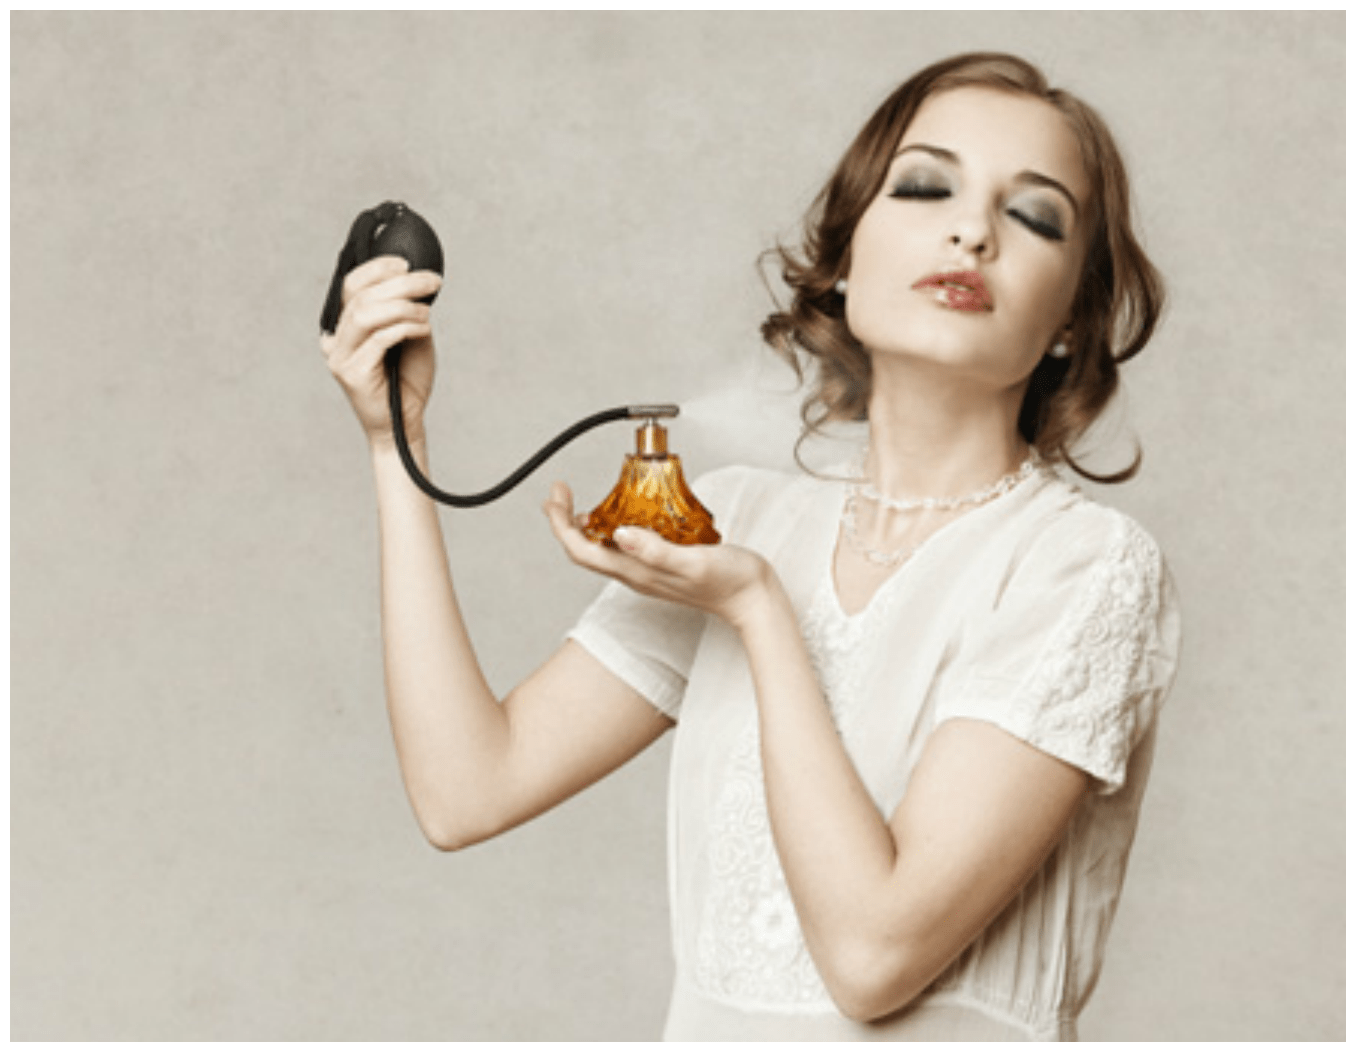 1960's Swinging Scents: Mod to Hippie Chic